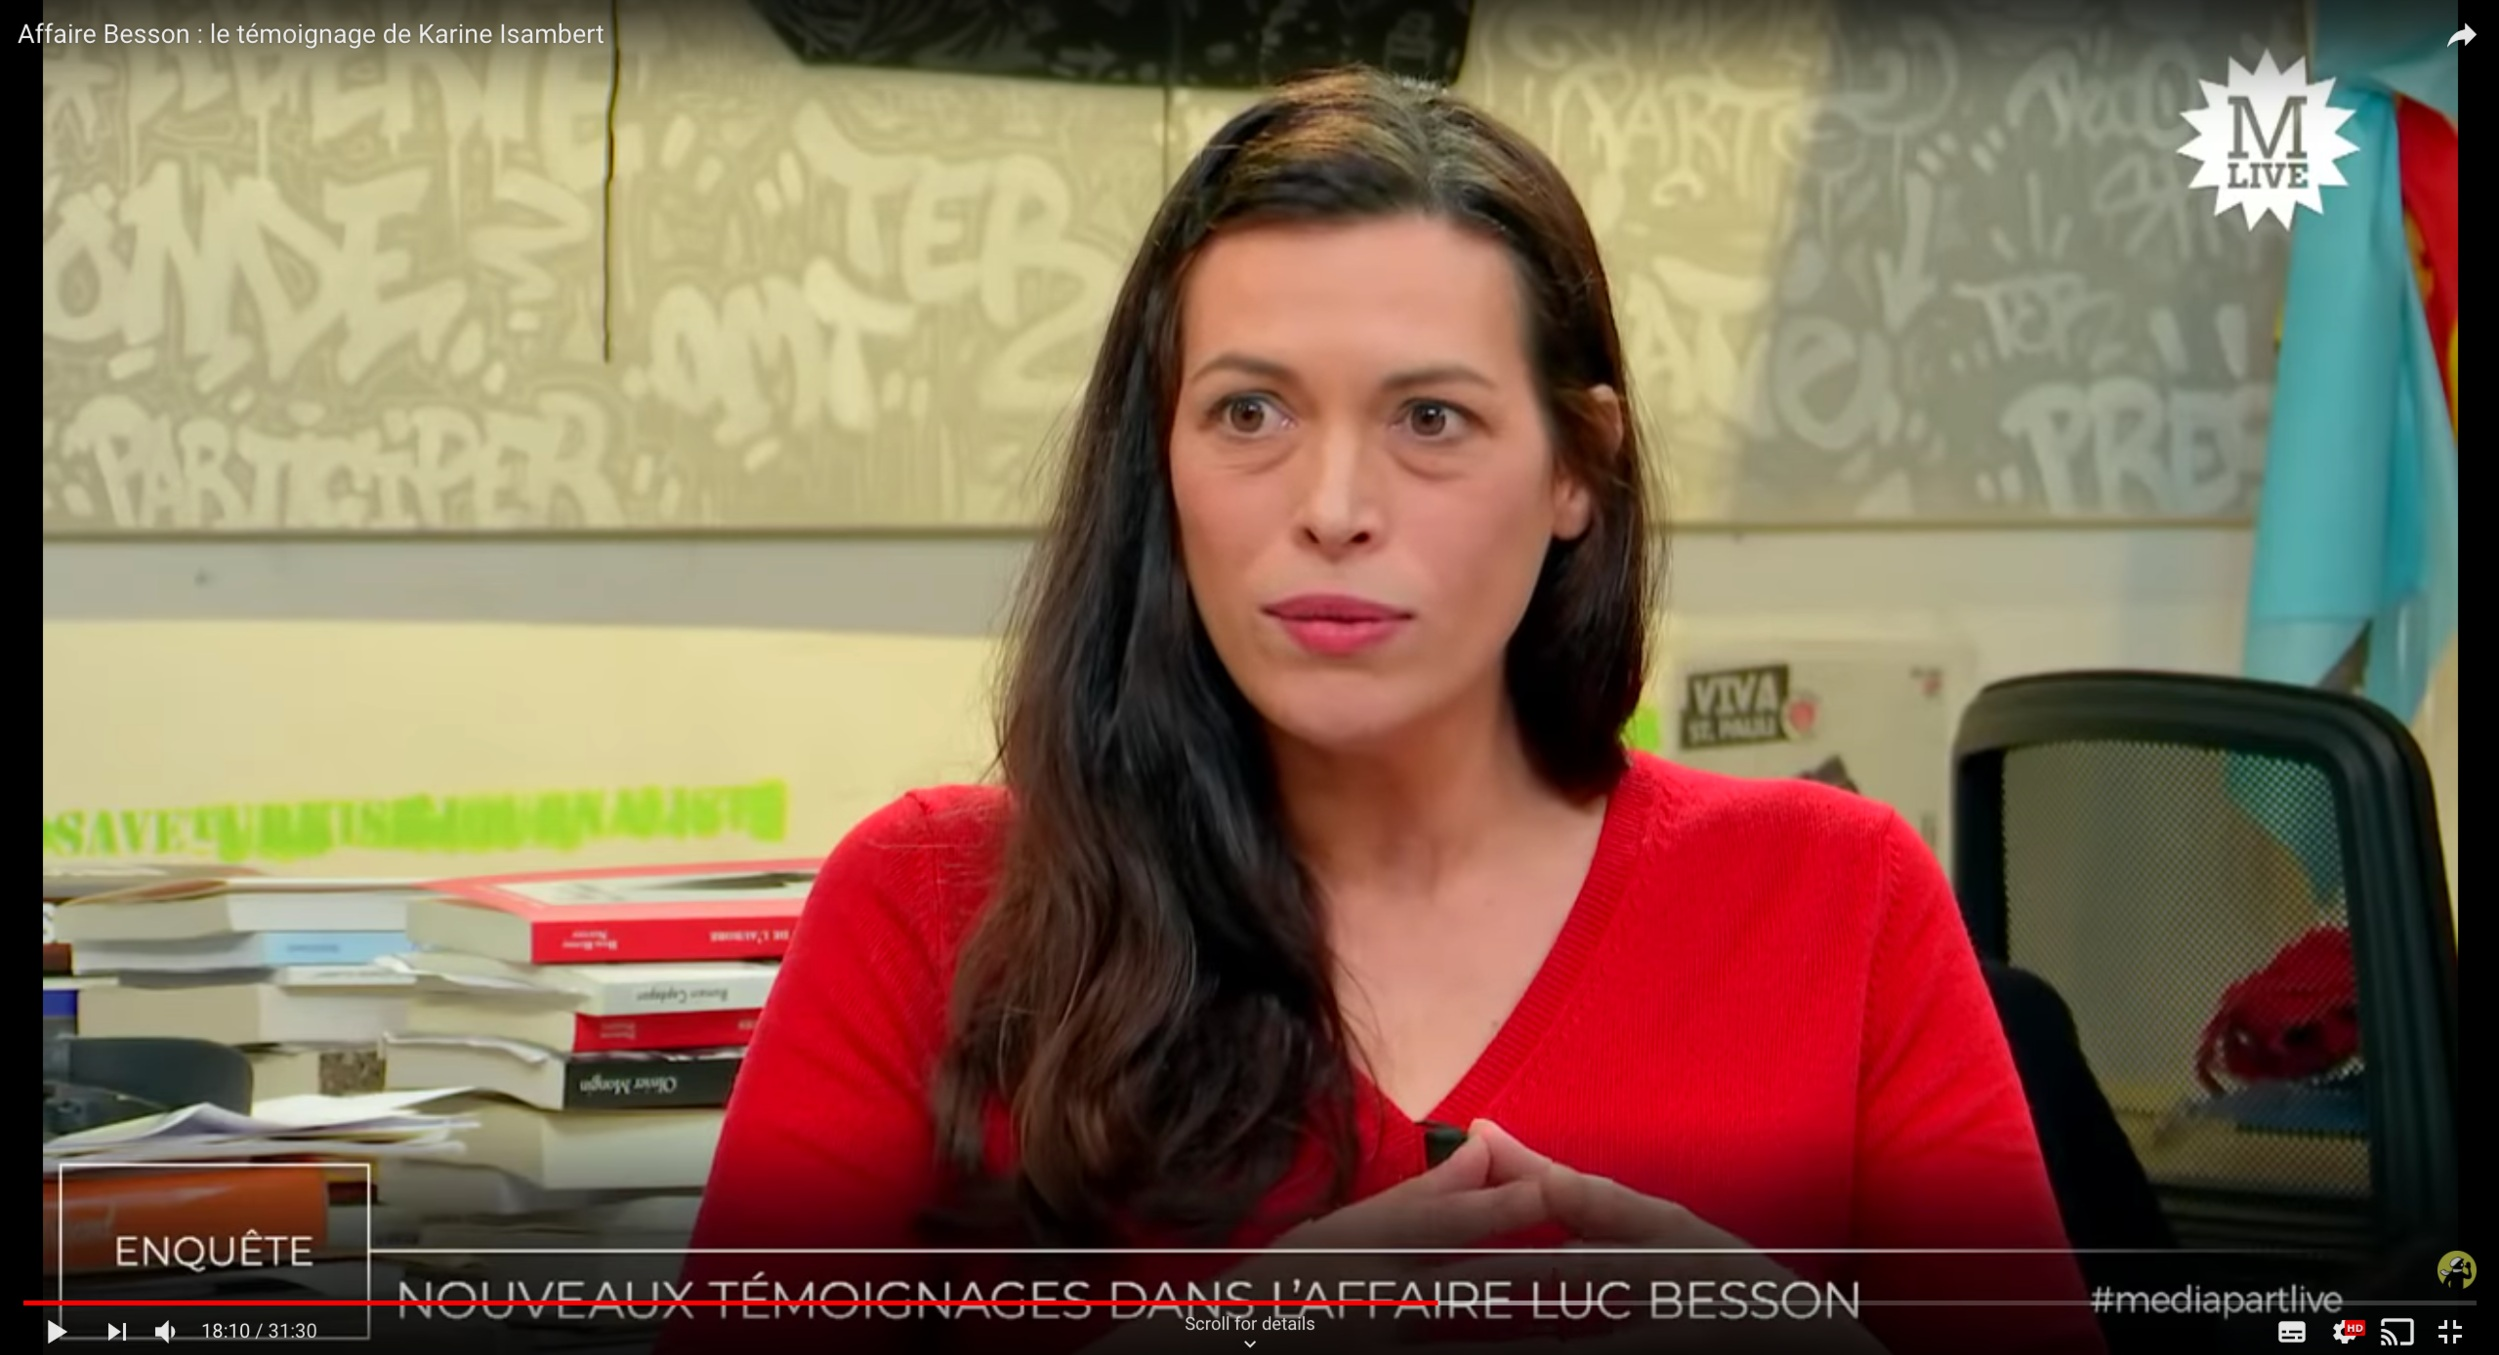 """Karine Isambert speaking out about Luc Besson in """" Affaire Besson : le témoignage de Karine Isambert """"."""